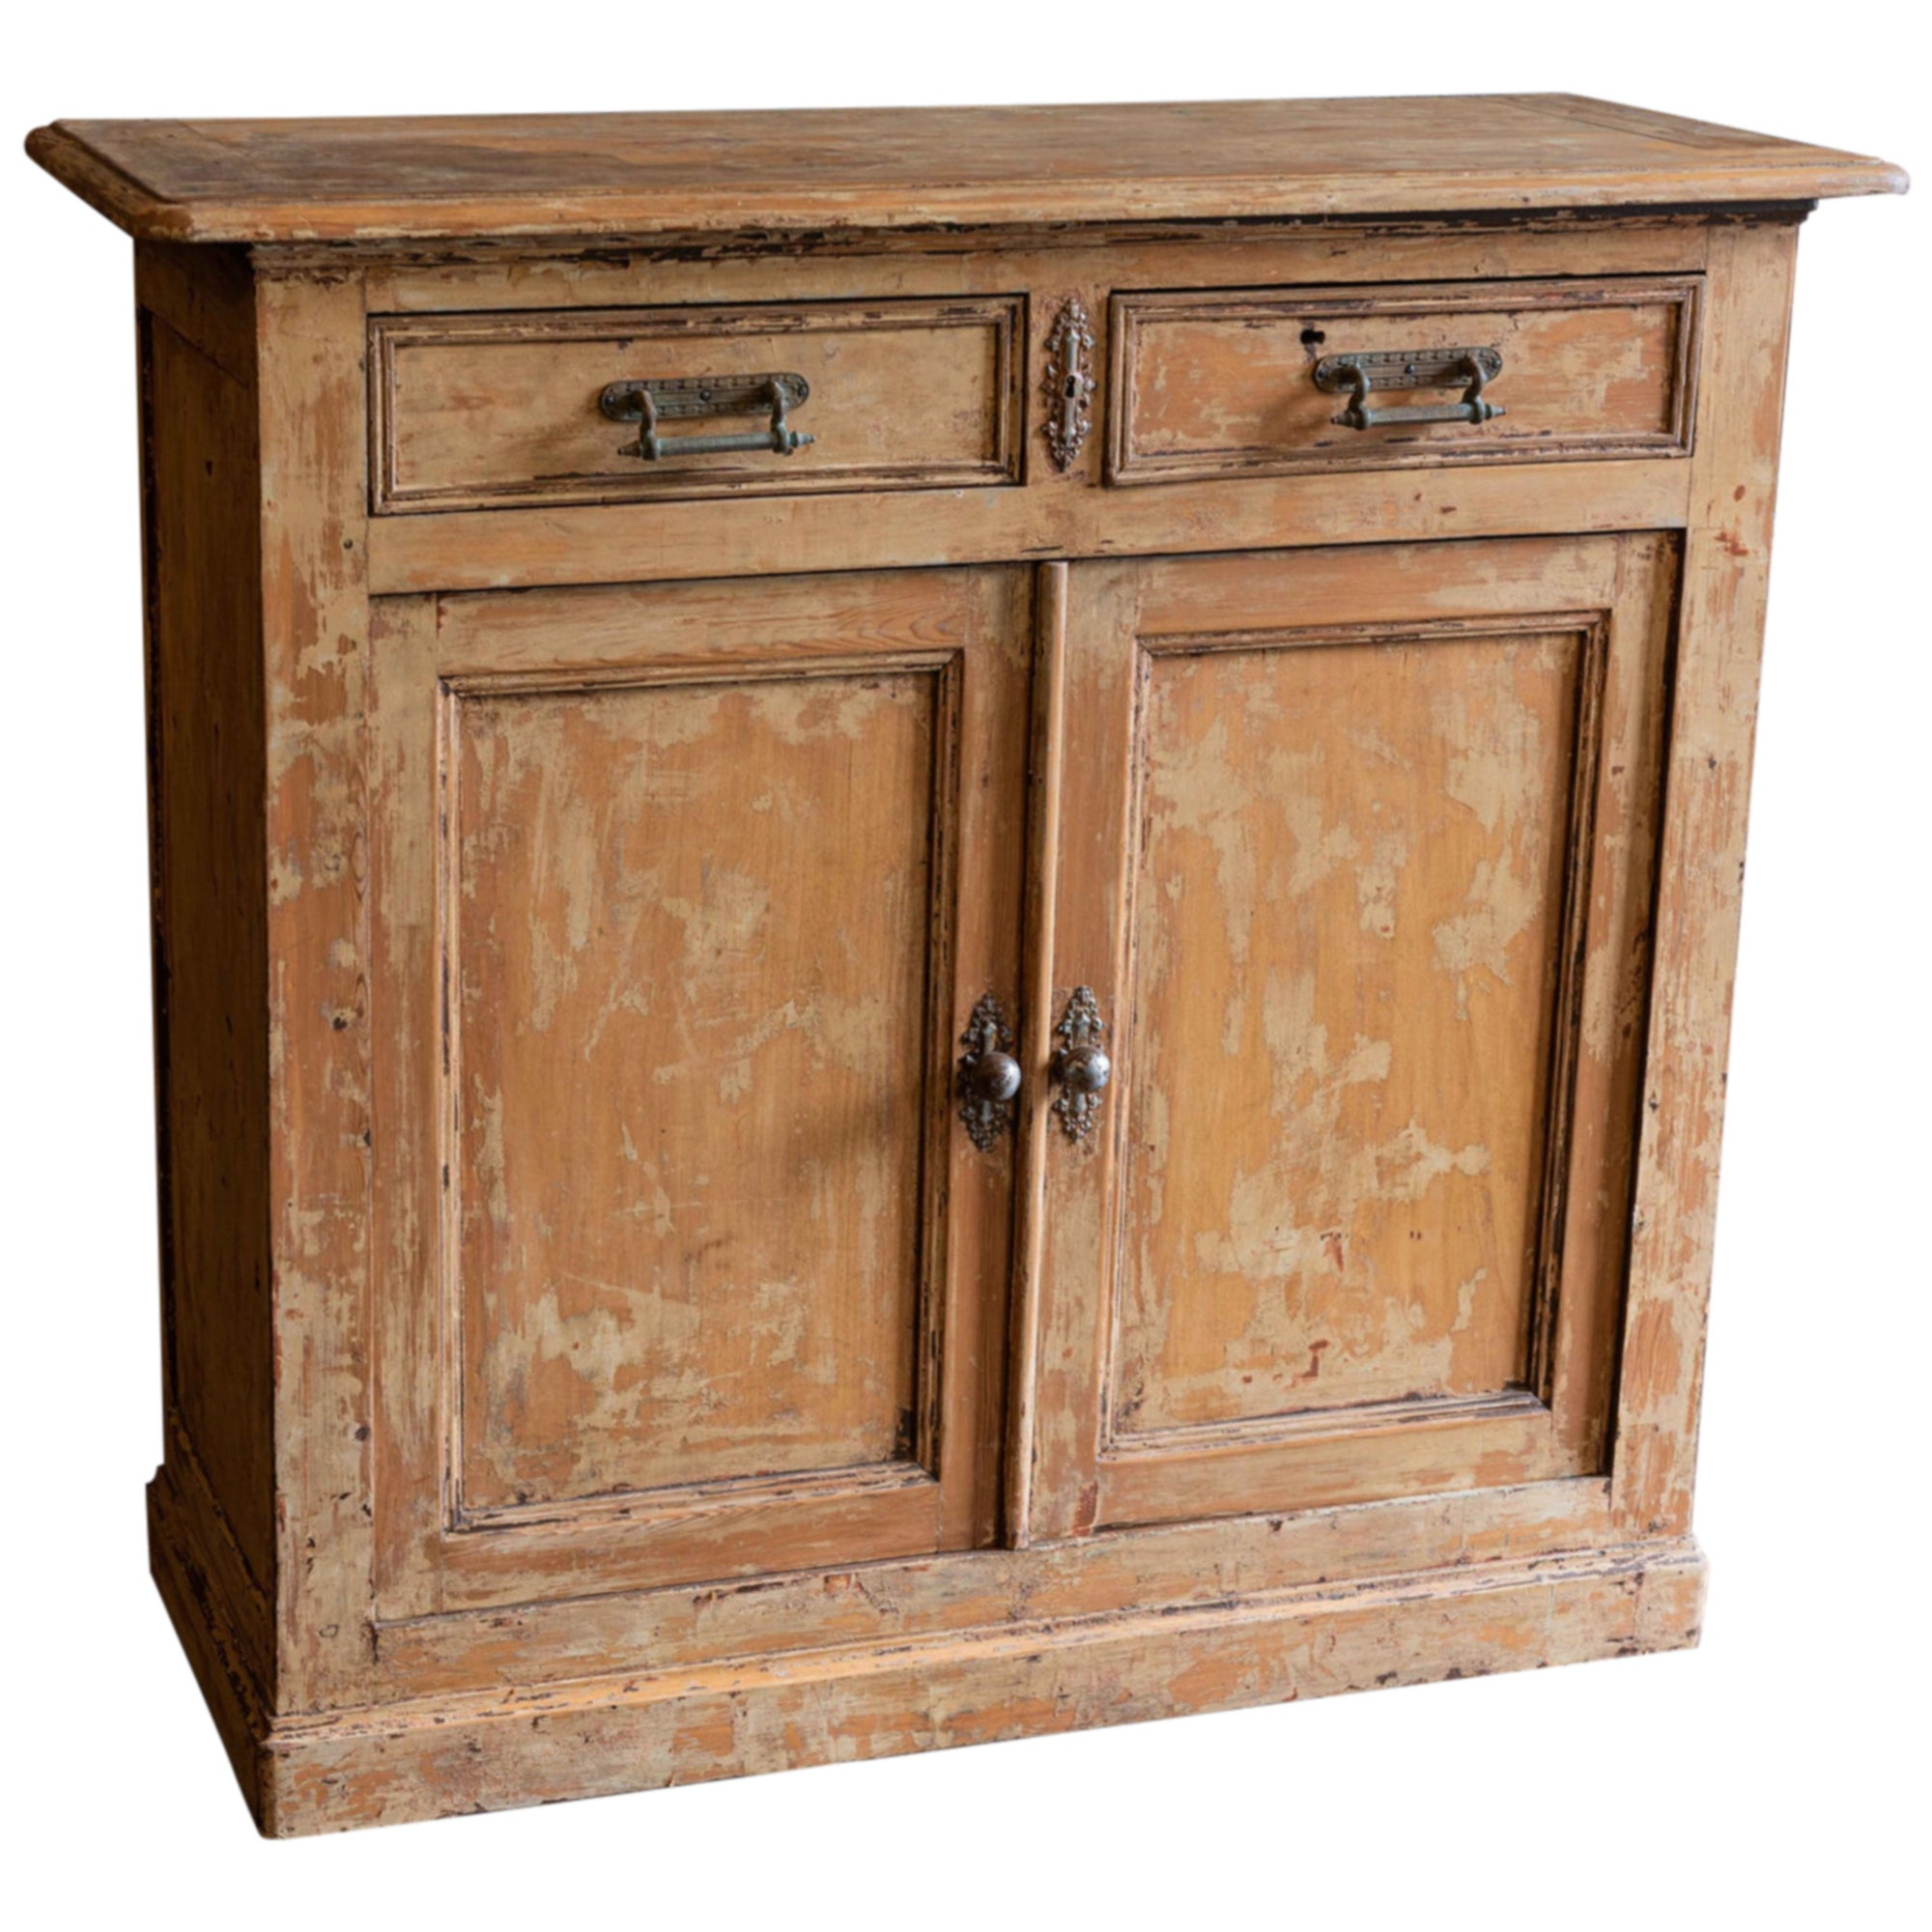 19th Century French Scraped Paint Buffet